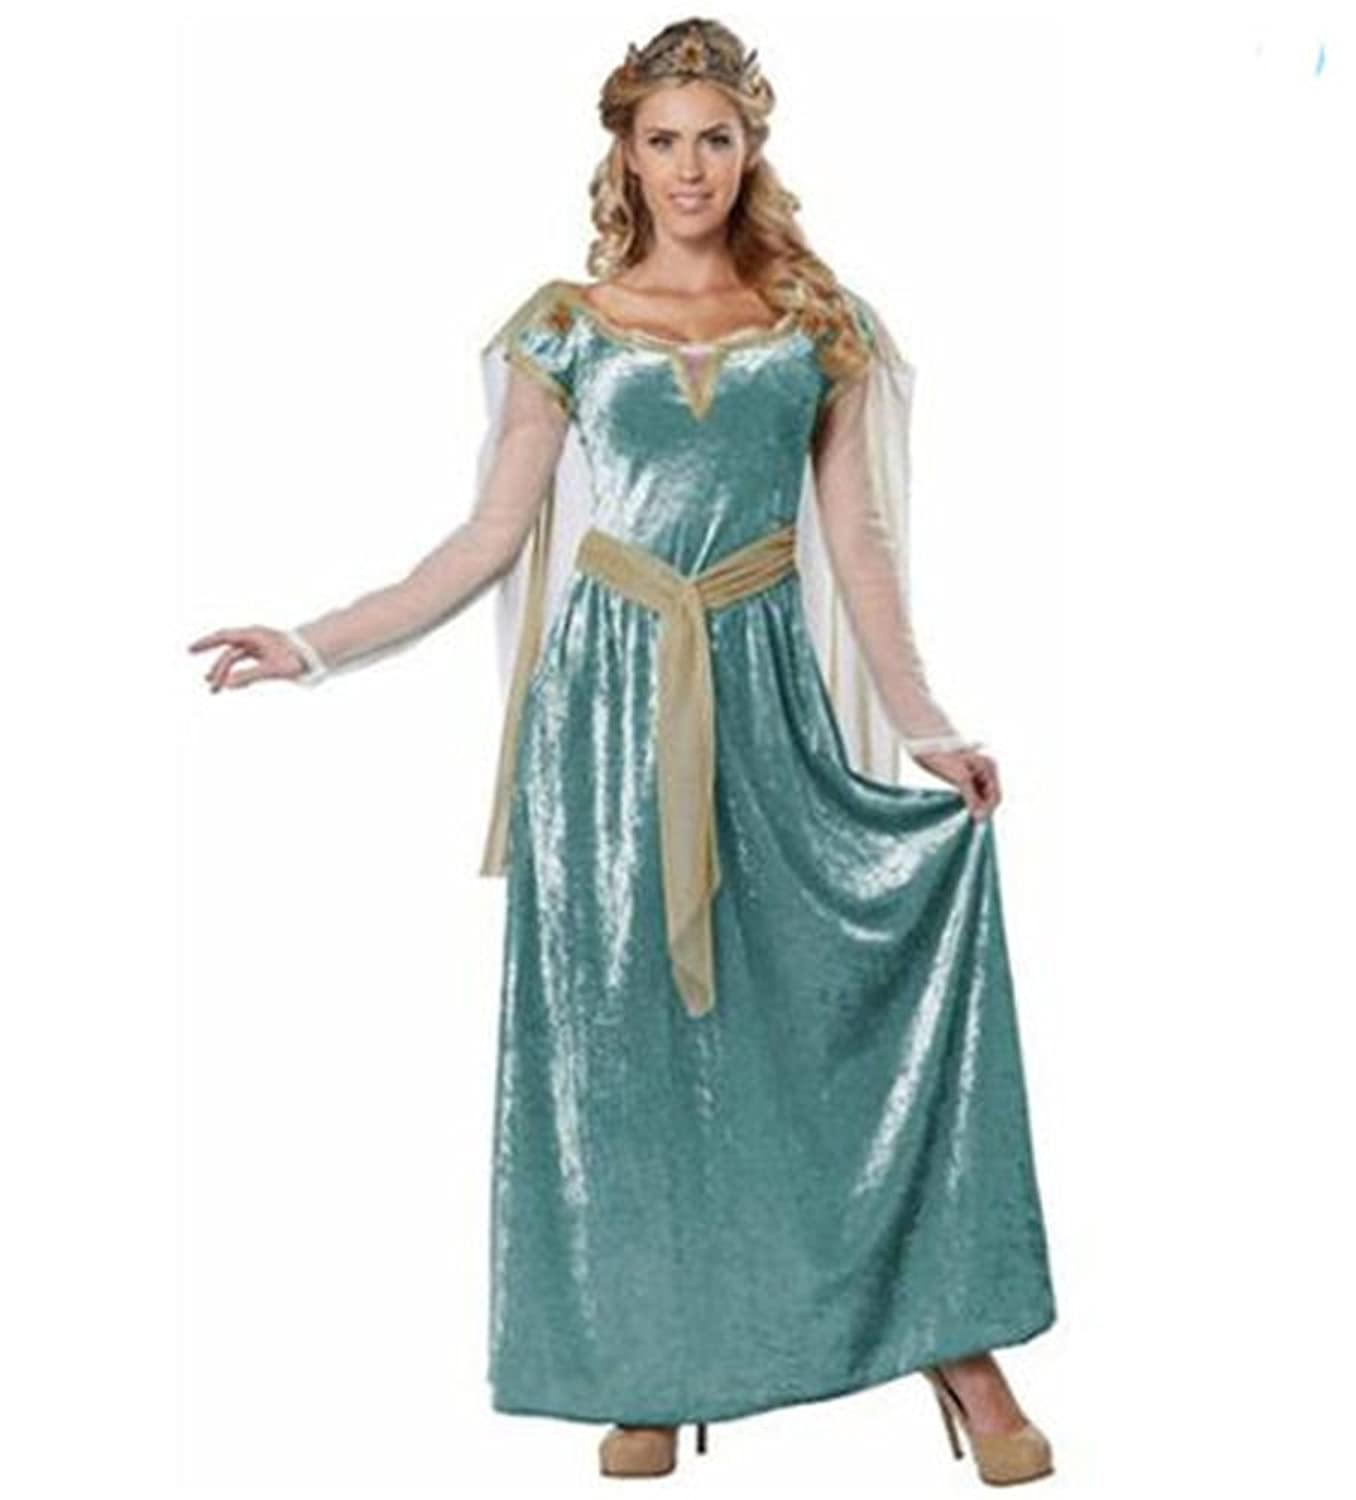 Amazon.com: Renaissance Queen Lady Guinevere Adult Woman Costume L ...